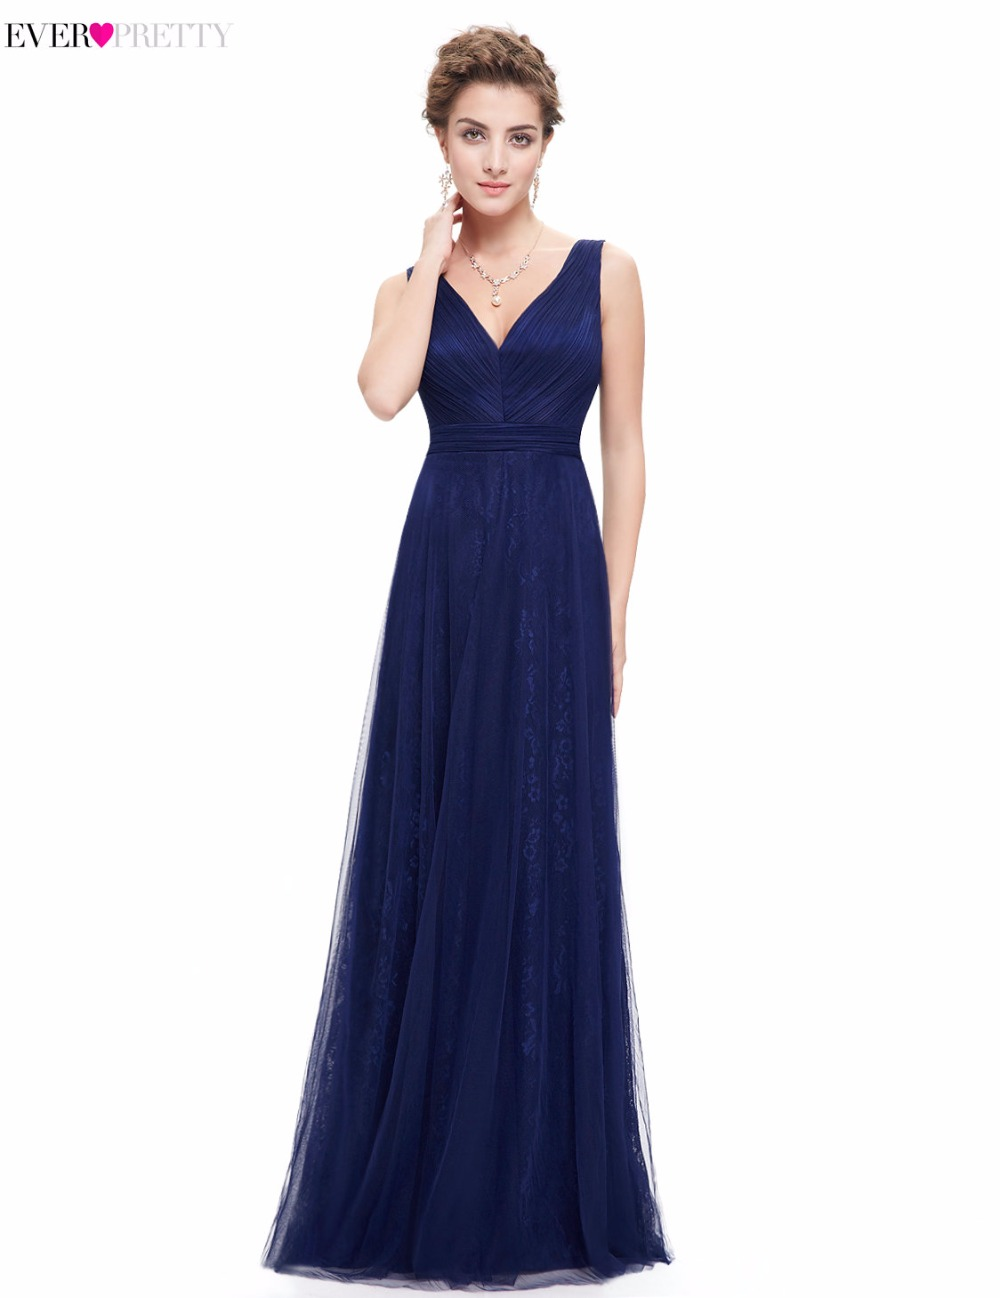 Compare Prices on Navy Formal Dress- Online Shopping/Buy Low Price ...